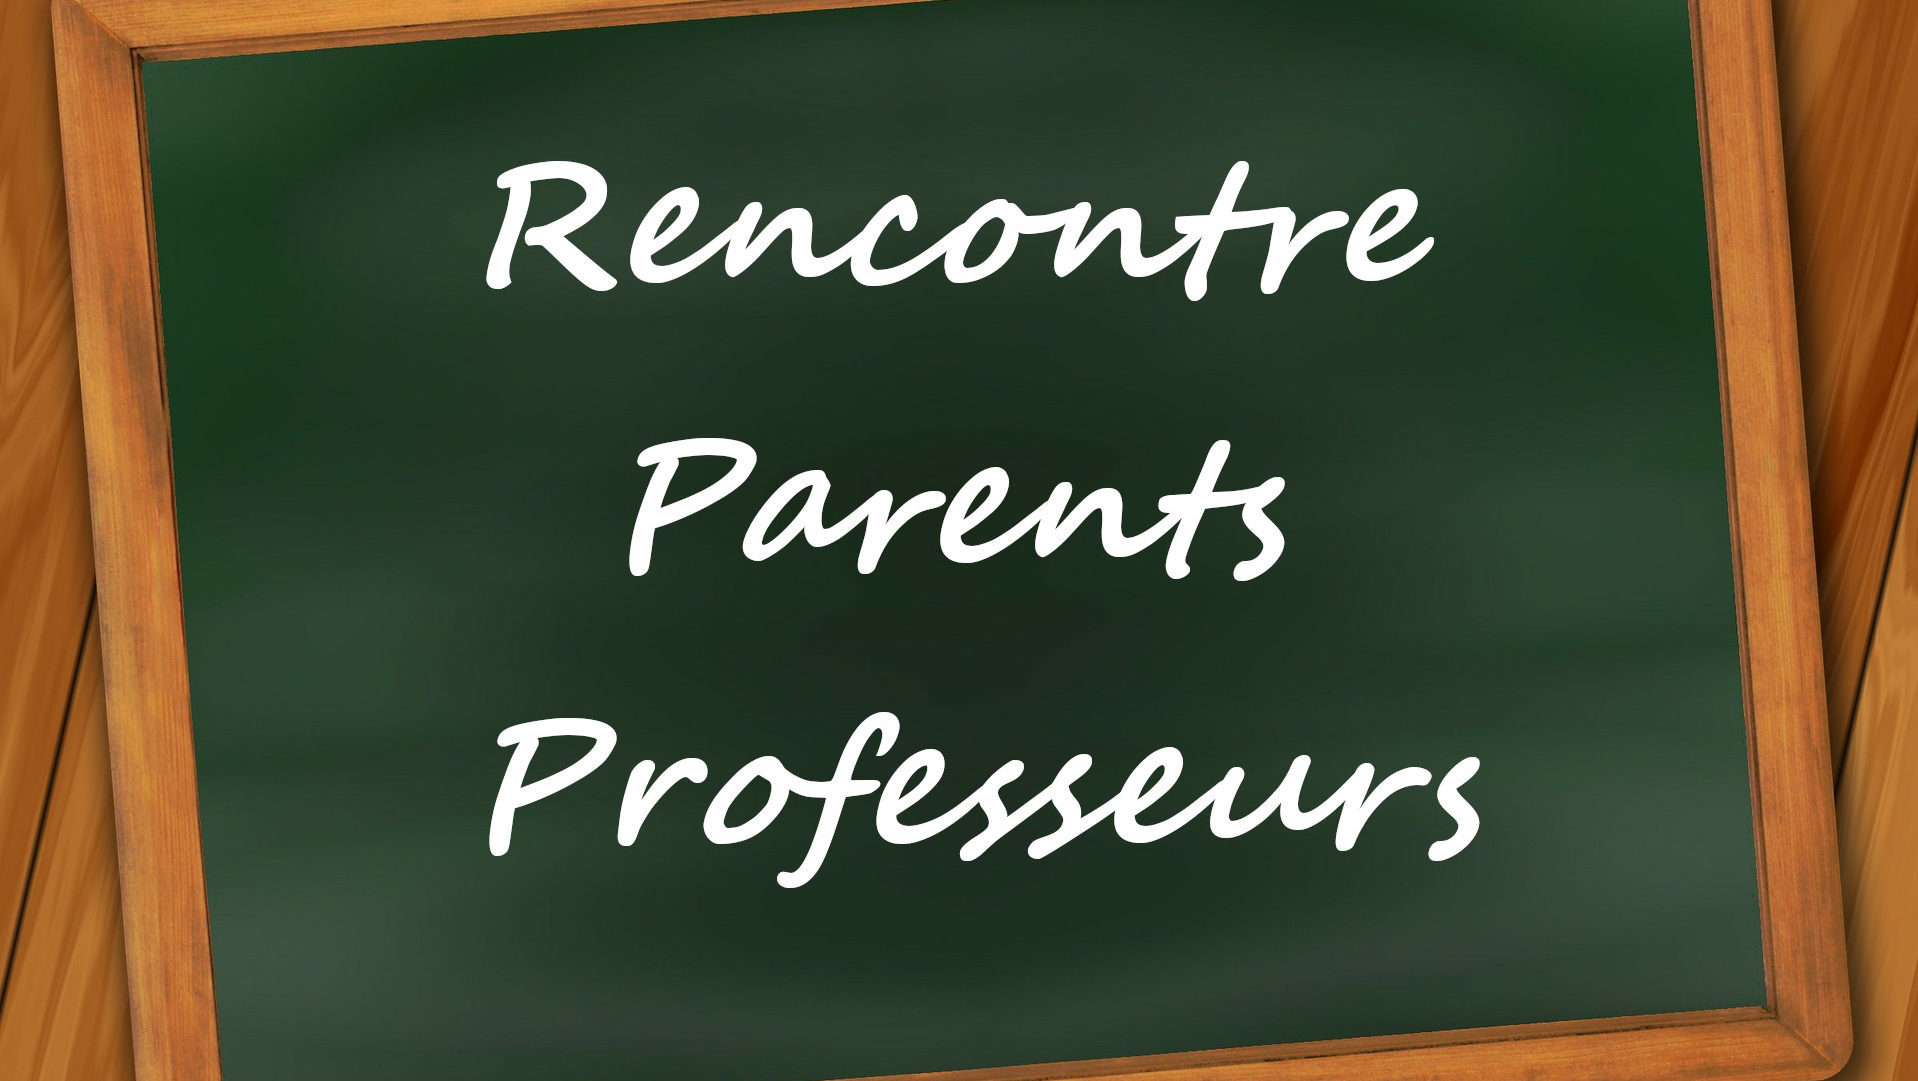 Rencontre parents profs.jpg